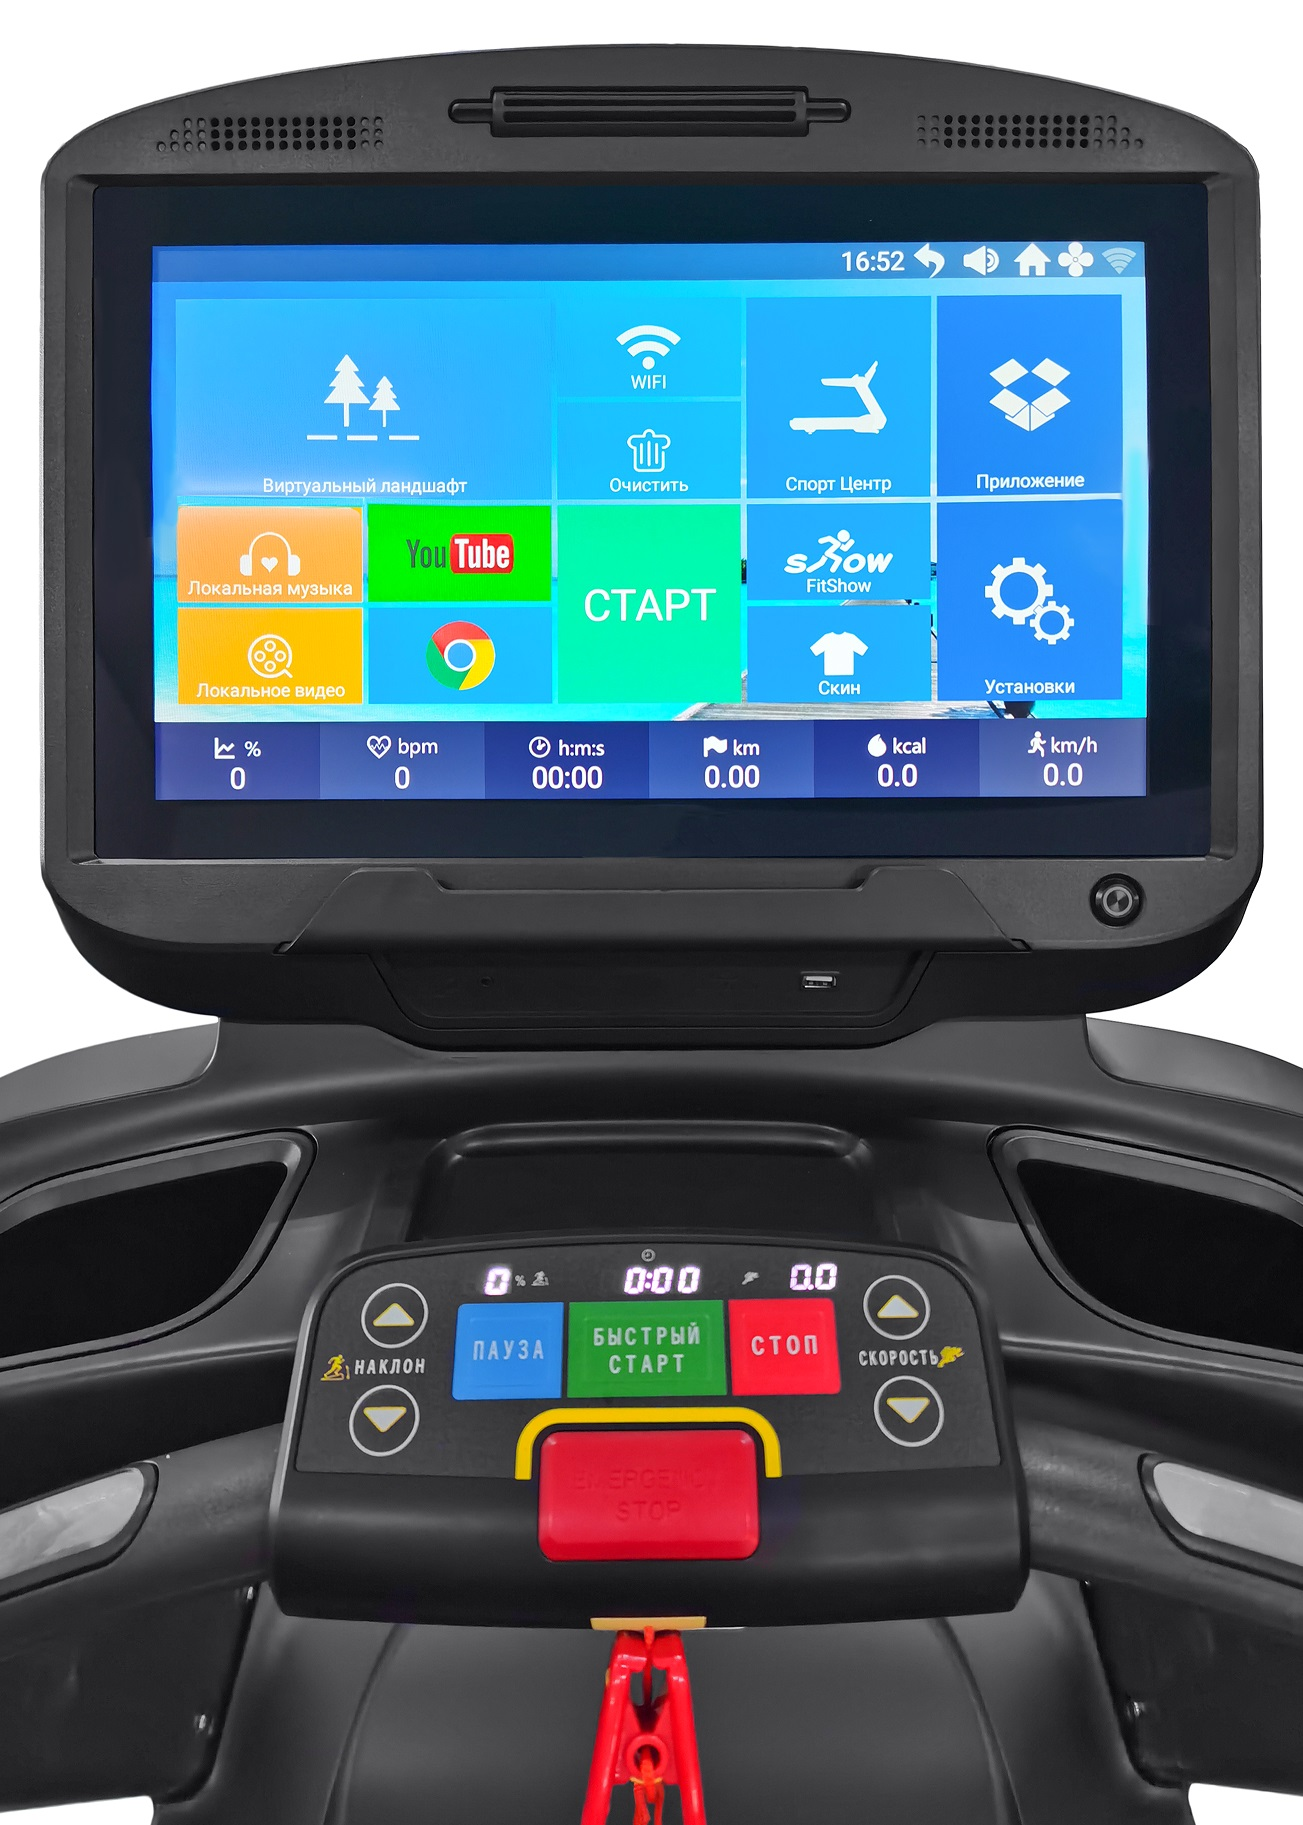 Cardiopower Pro CT320 preview 2